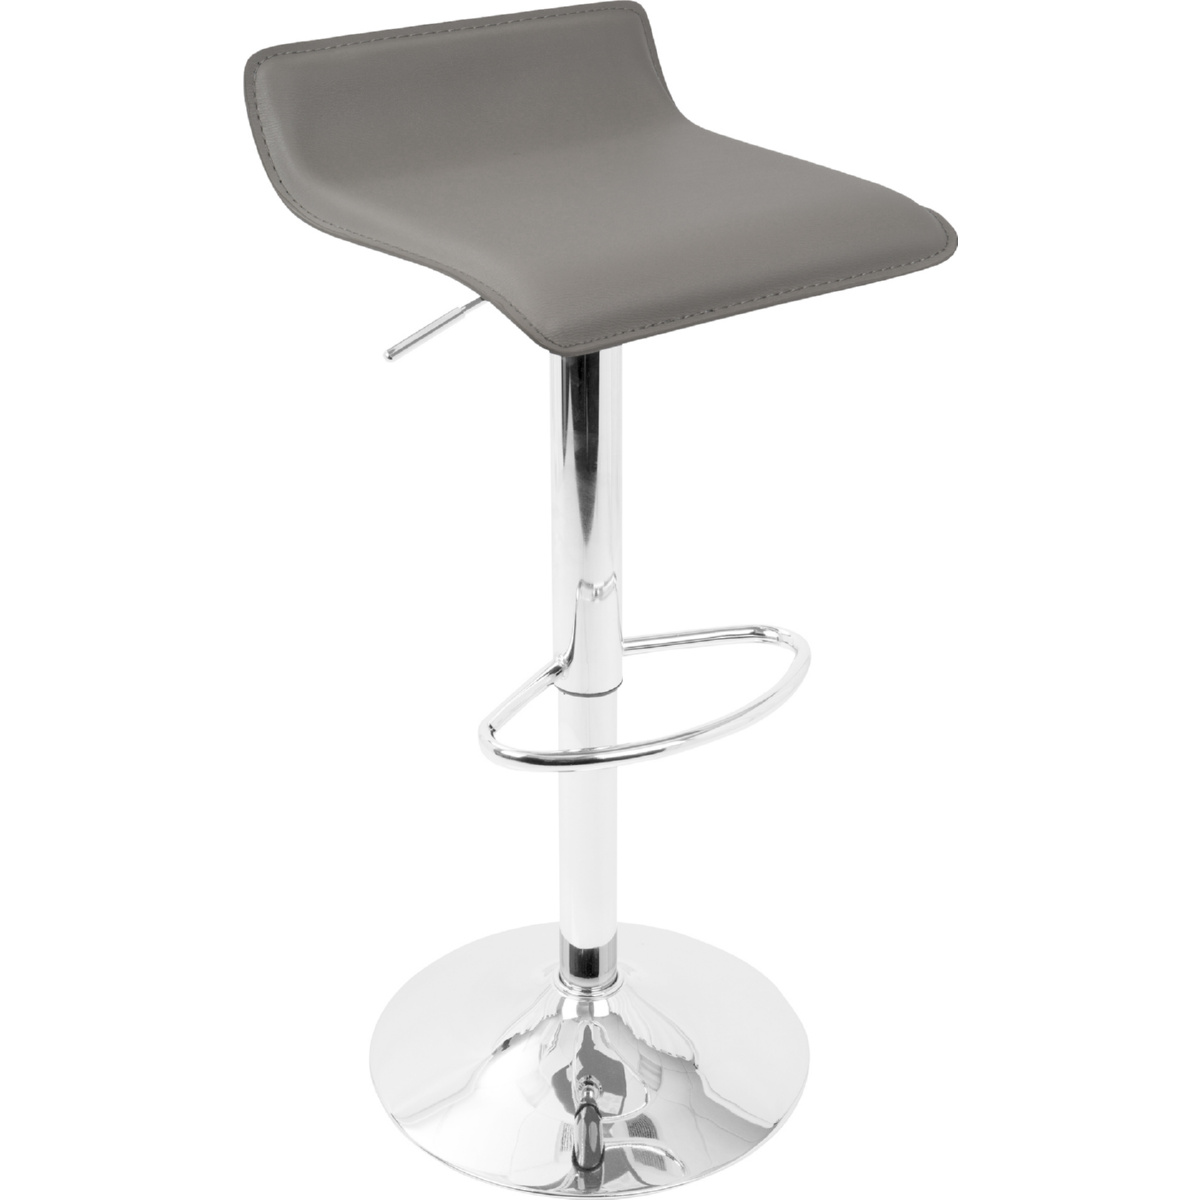 Superb Ale Contemporary Adjustable Bar Stool In Grey Leatherette Set Of 2 By Lumisource Alphanode Cool Chair Designs And Ideas Alphanodeonline